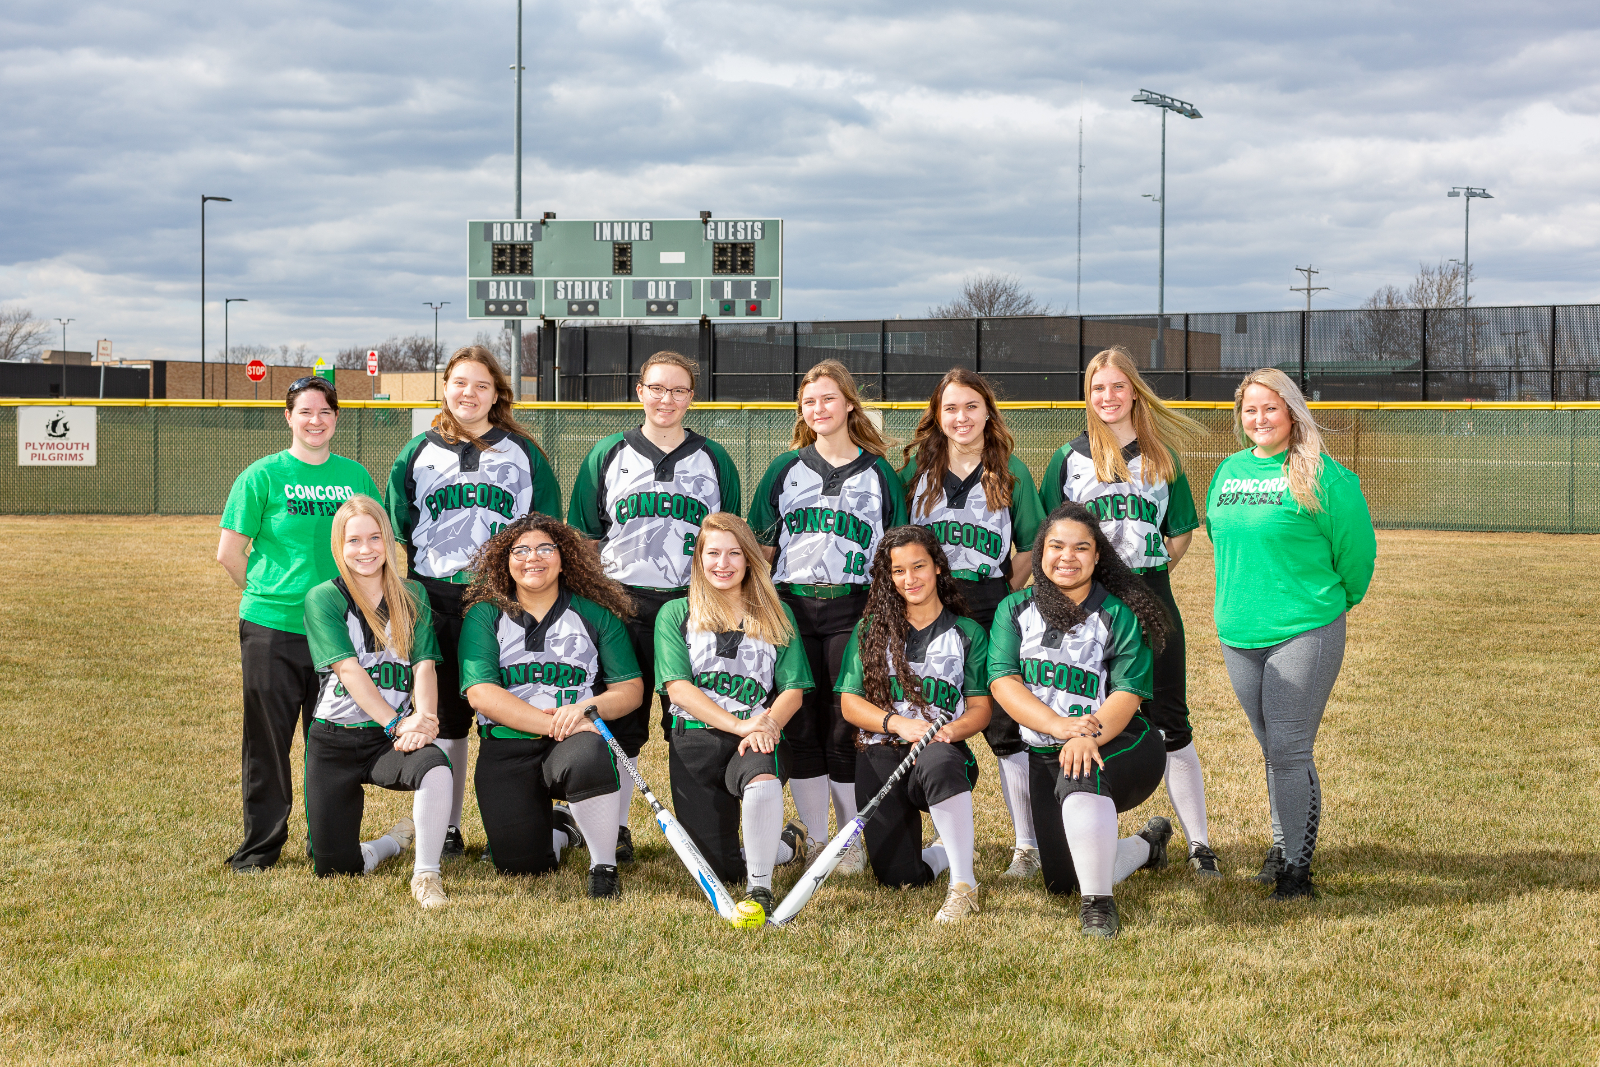 2020-21 Softball Team Pictures